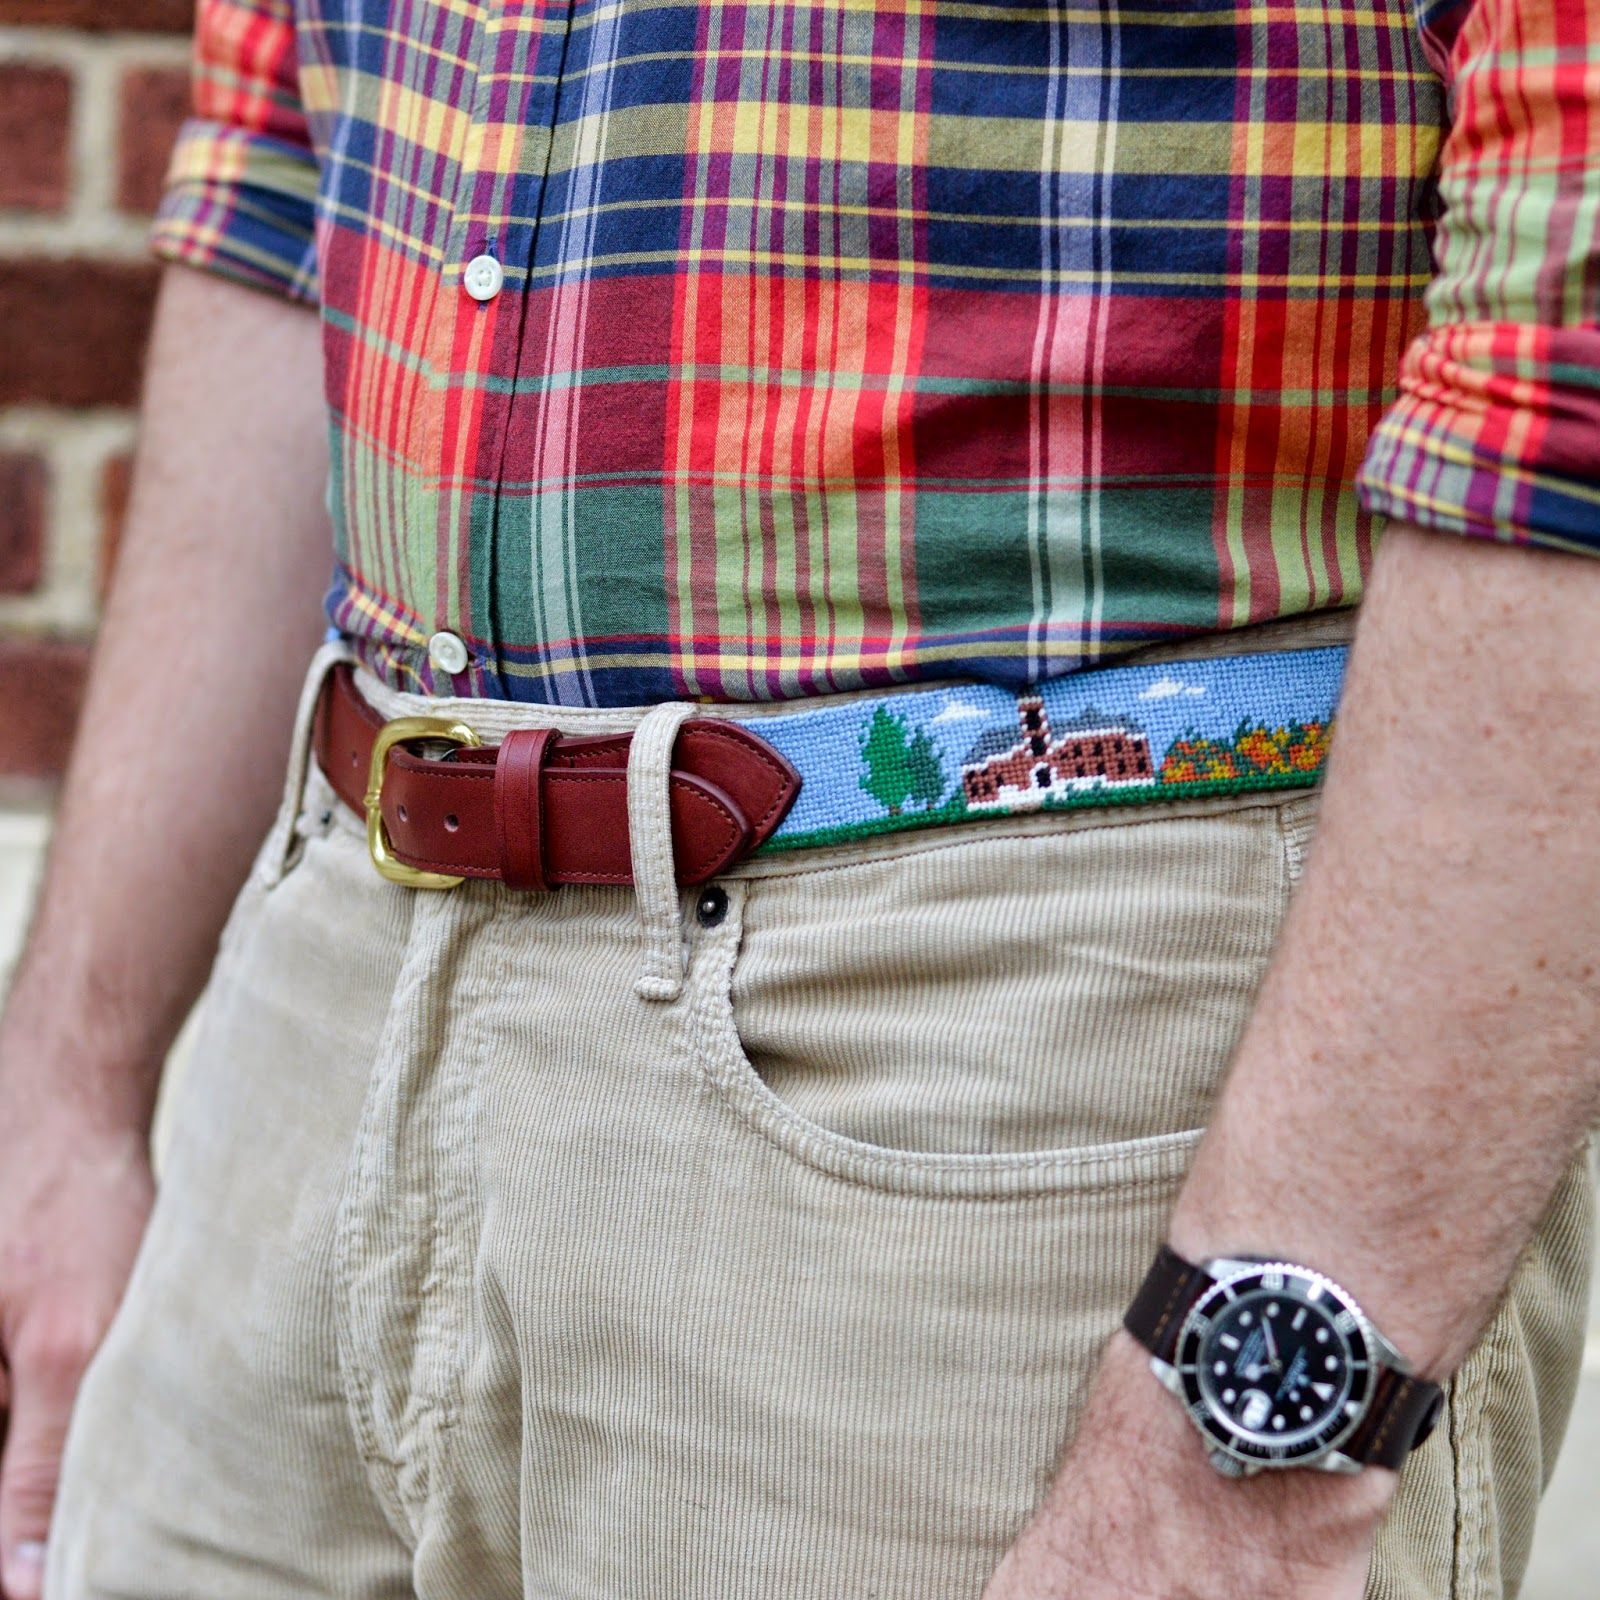 How to Needlepoint a Belt